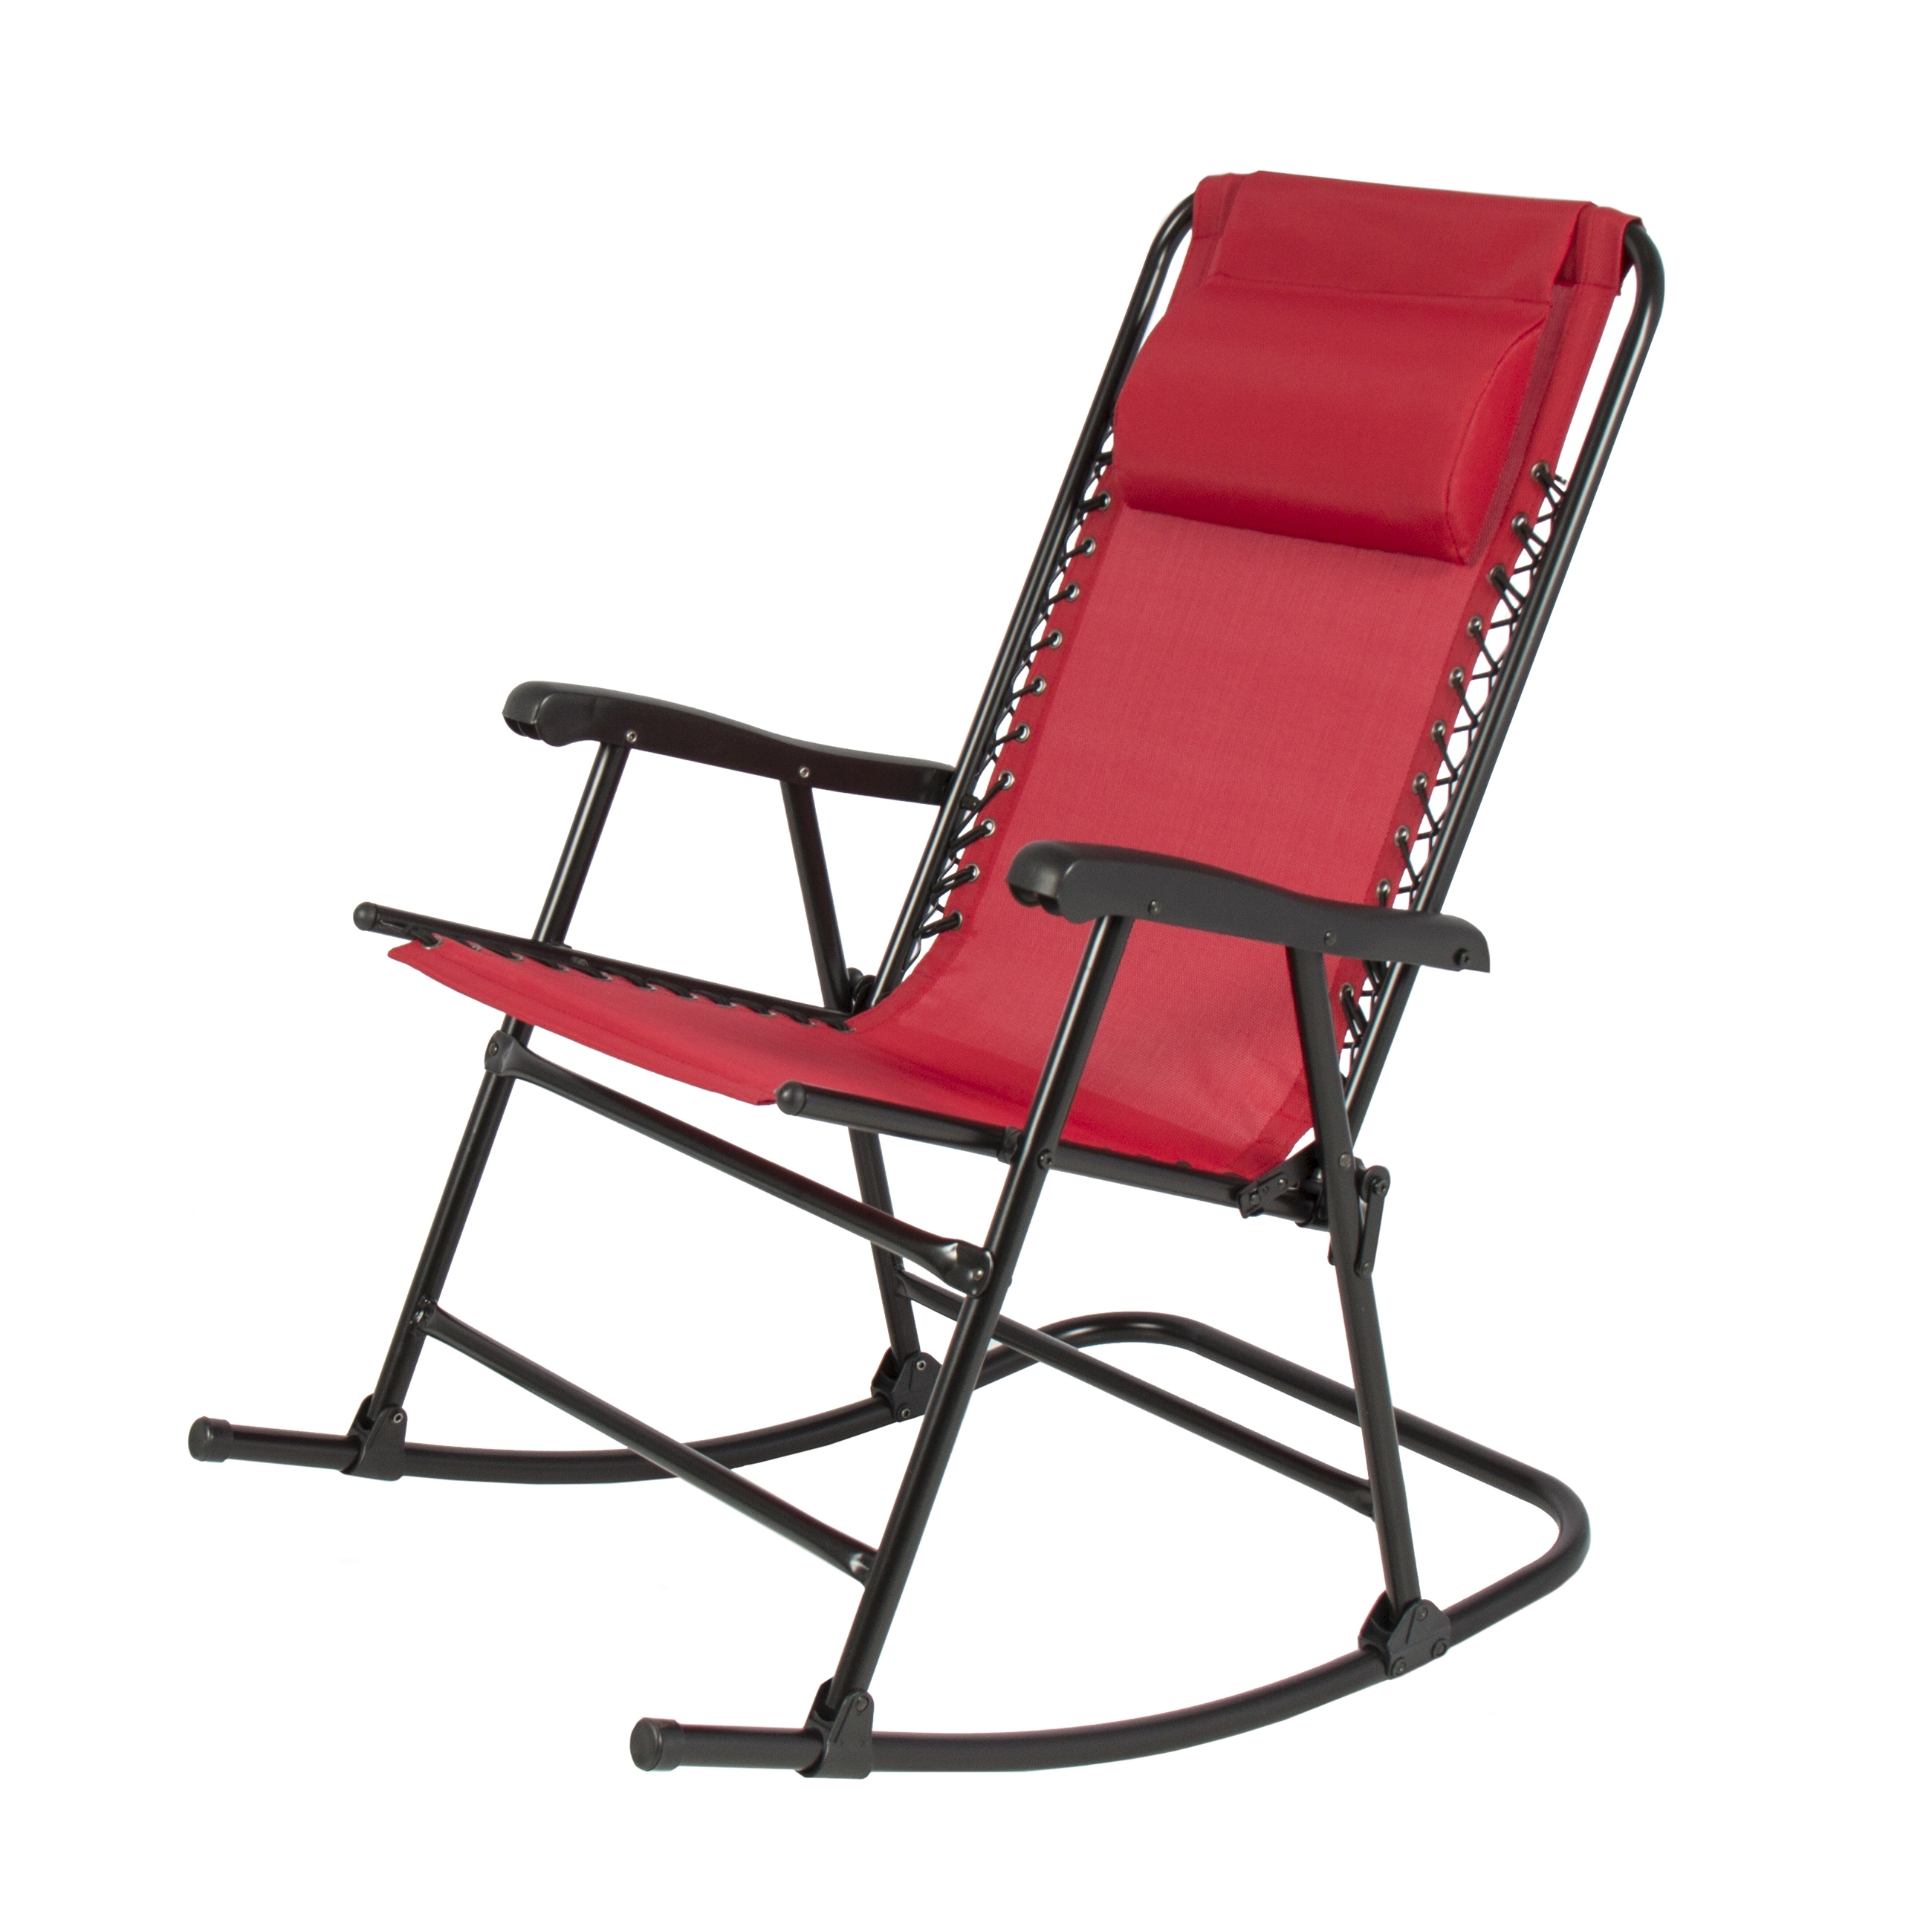 Folding Rocking Chairs Within Preferred Amazing Of Rocking Patio Chairs Folding Rocking Chair Foldable (View 8 of 15)